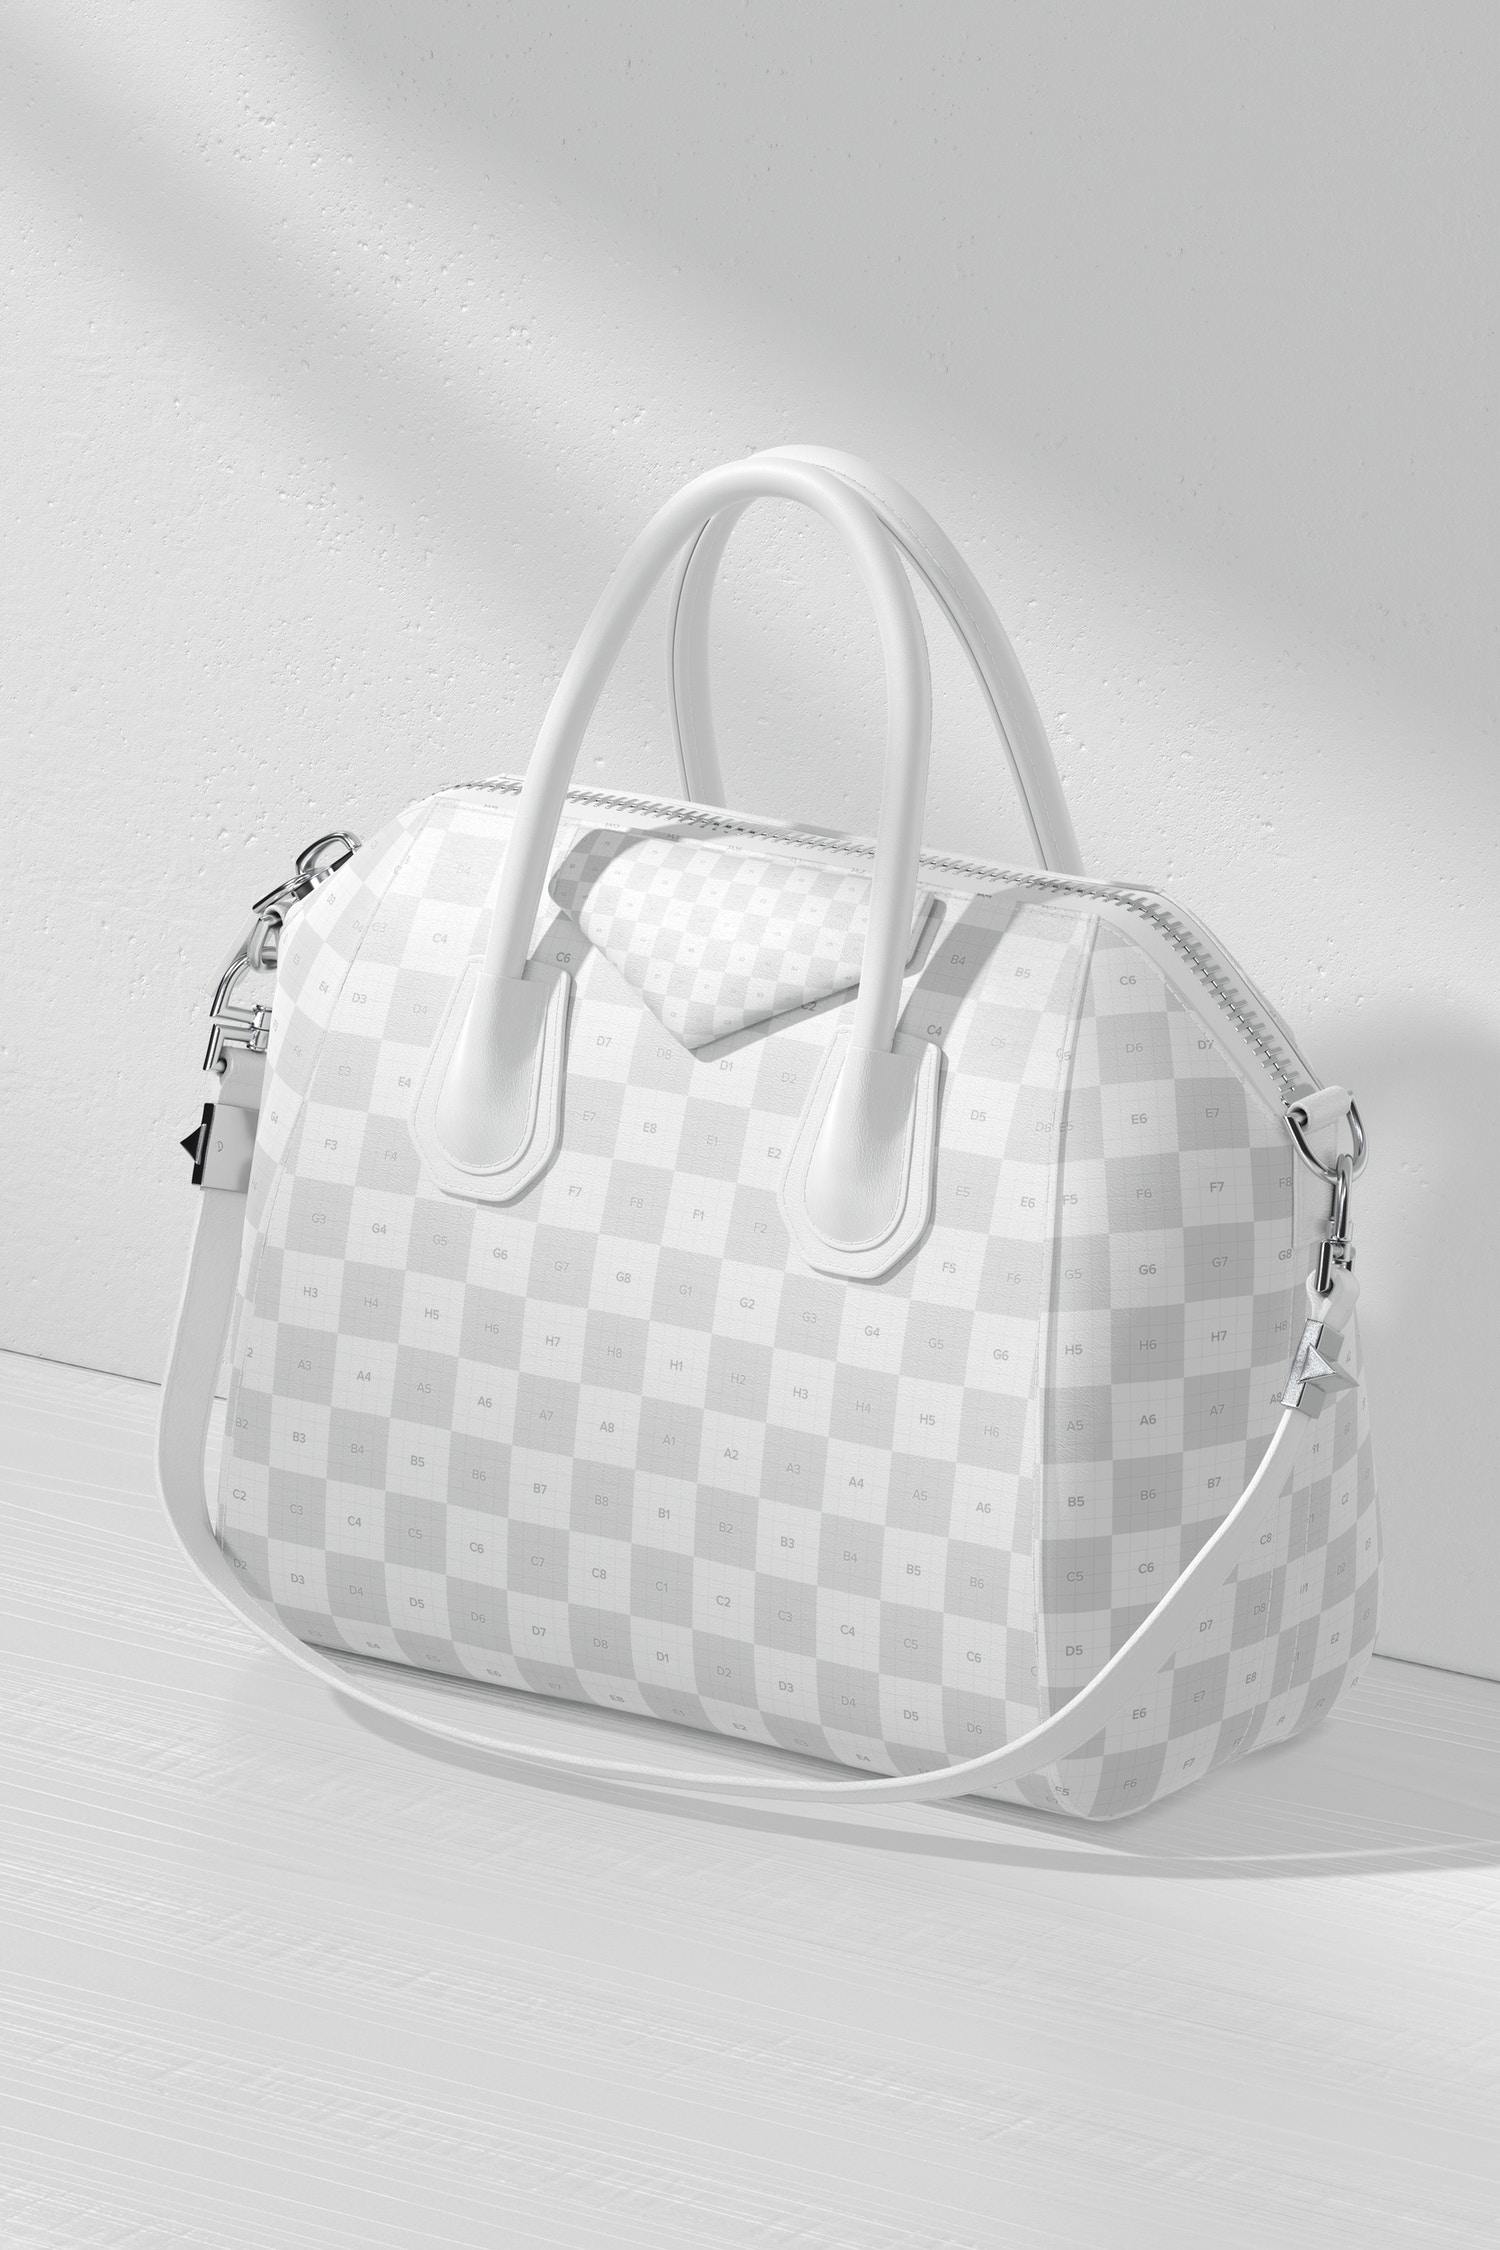 Women's Leather Bag Mockup, Perspective